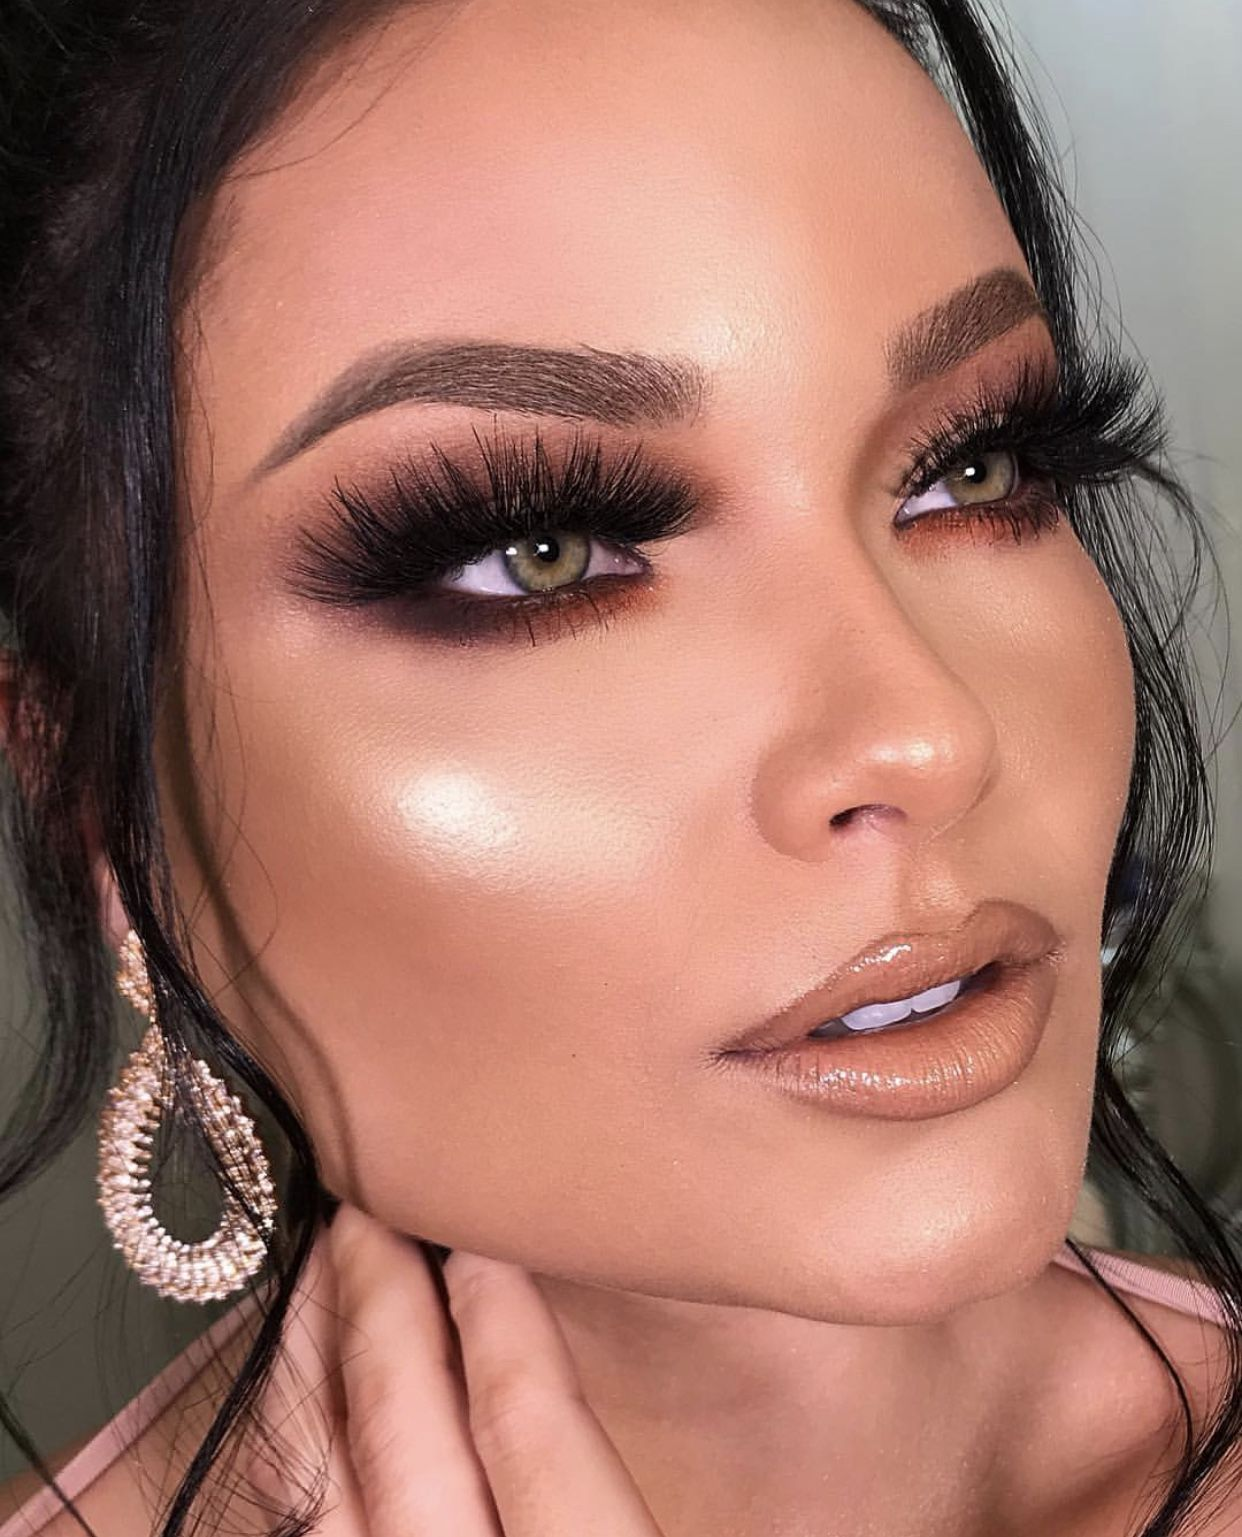 Sultry makeup image by Hessa on Makeup looks Best makeup